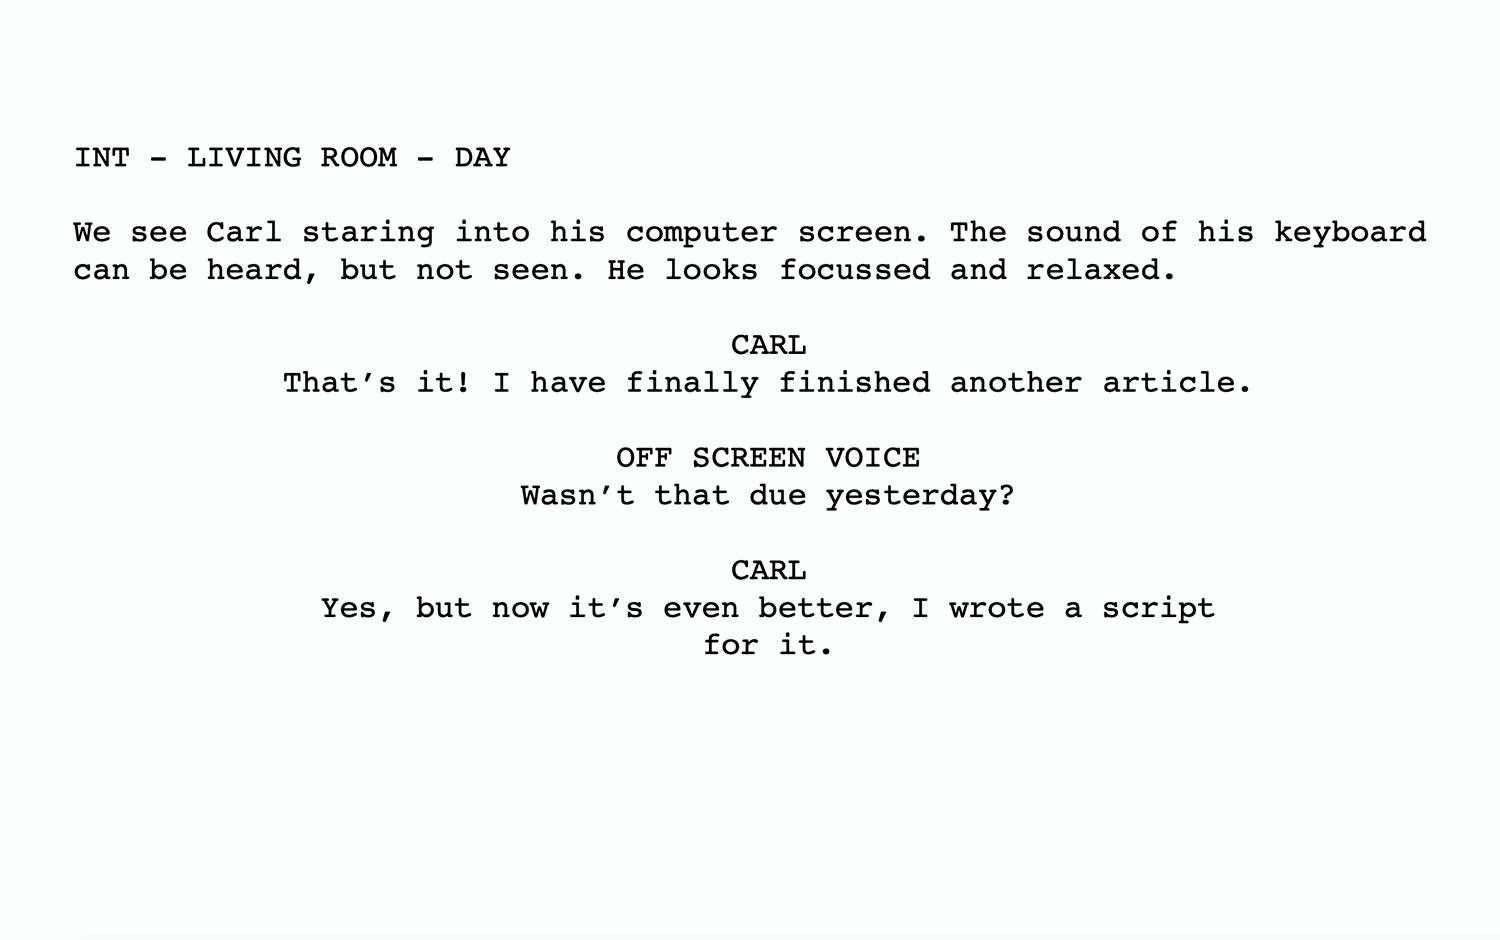 A short film script excerpt on a white background